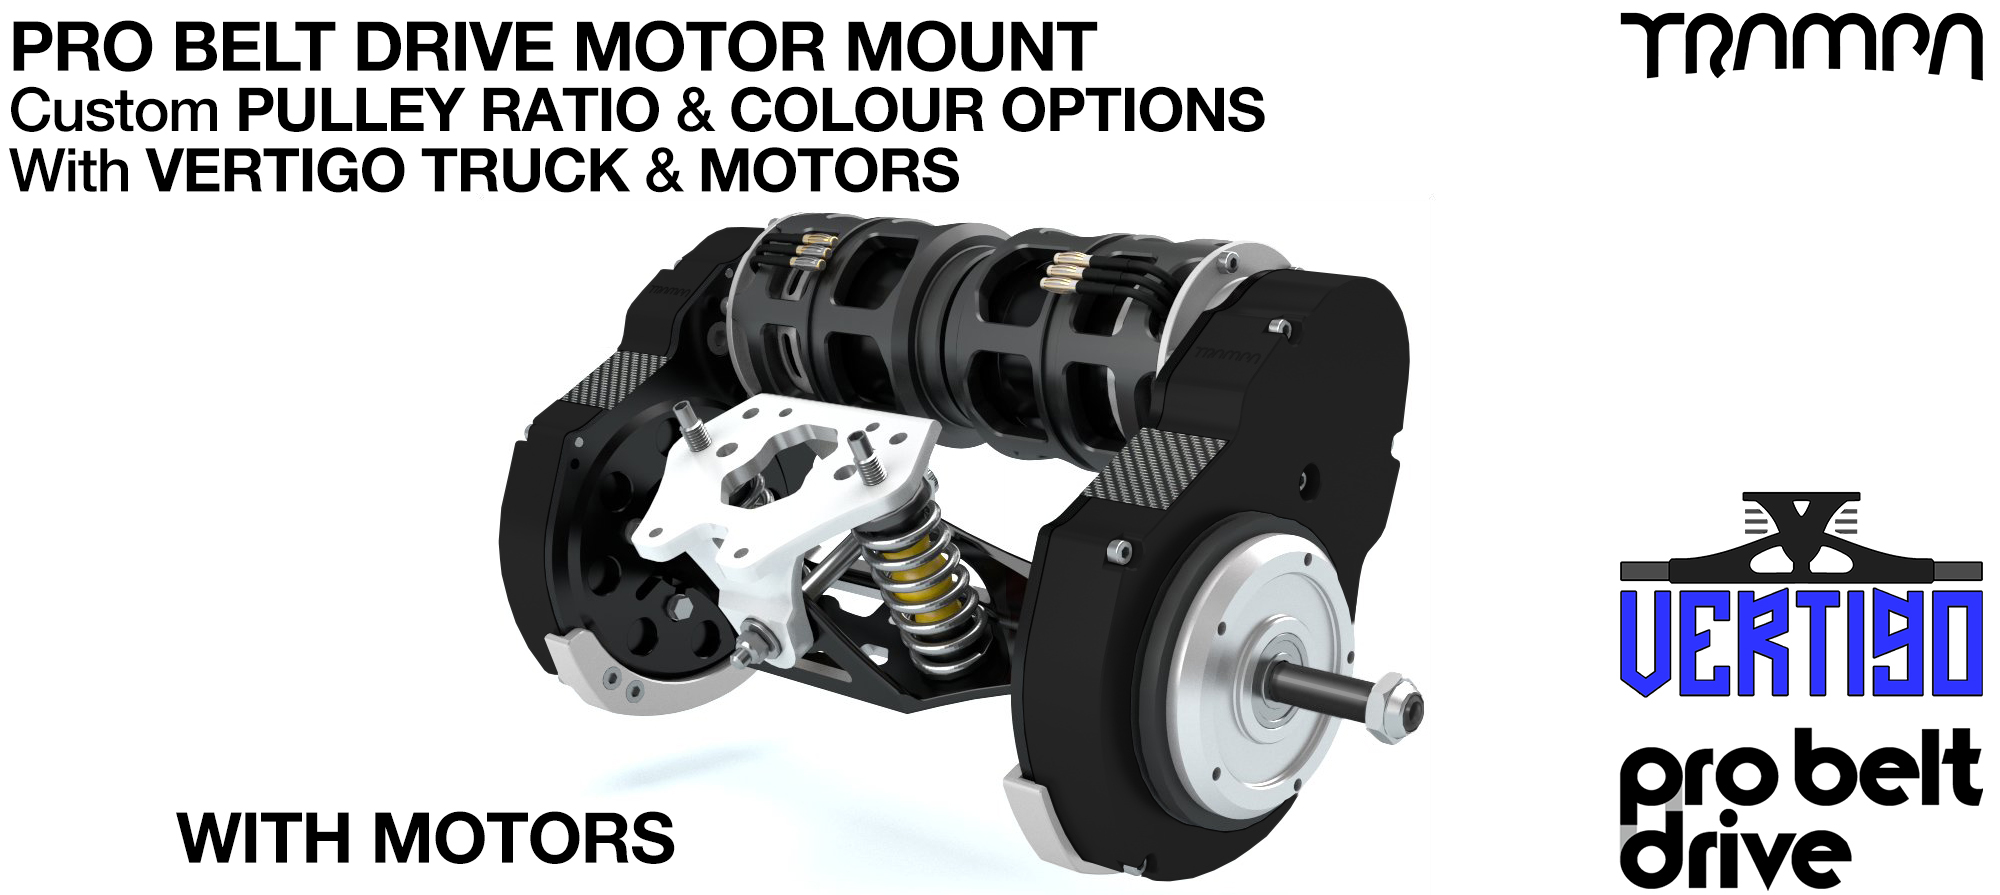 Mountainboard PRO Belt Drive TWIN Motor Mounts, Motors & Precision VERTIGO Truck